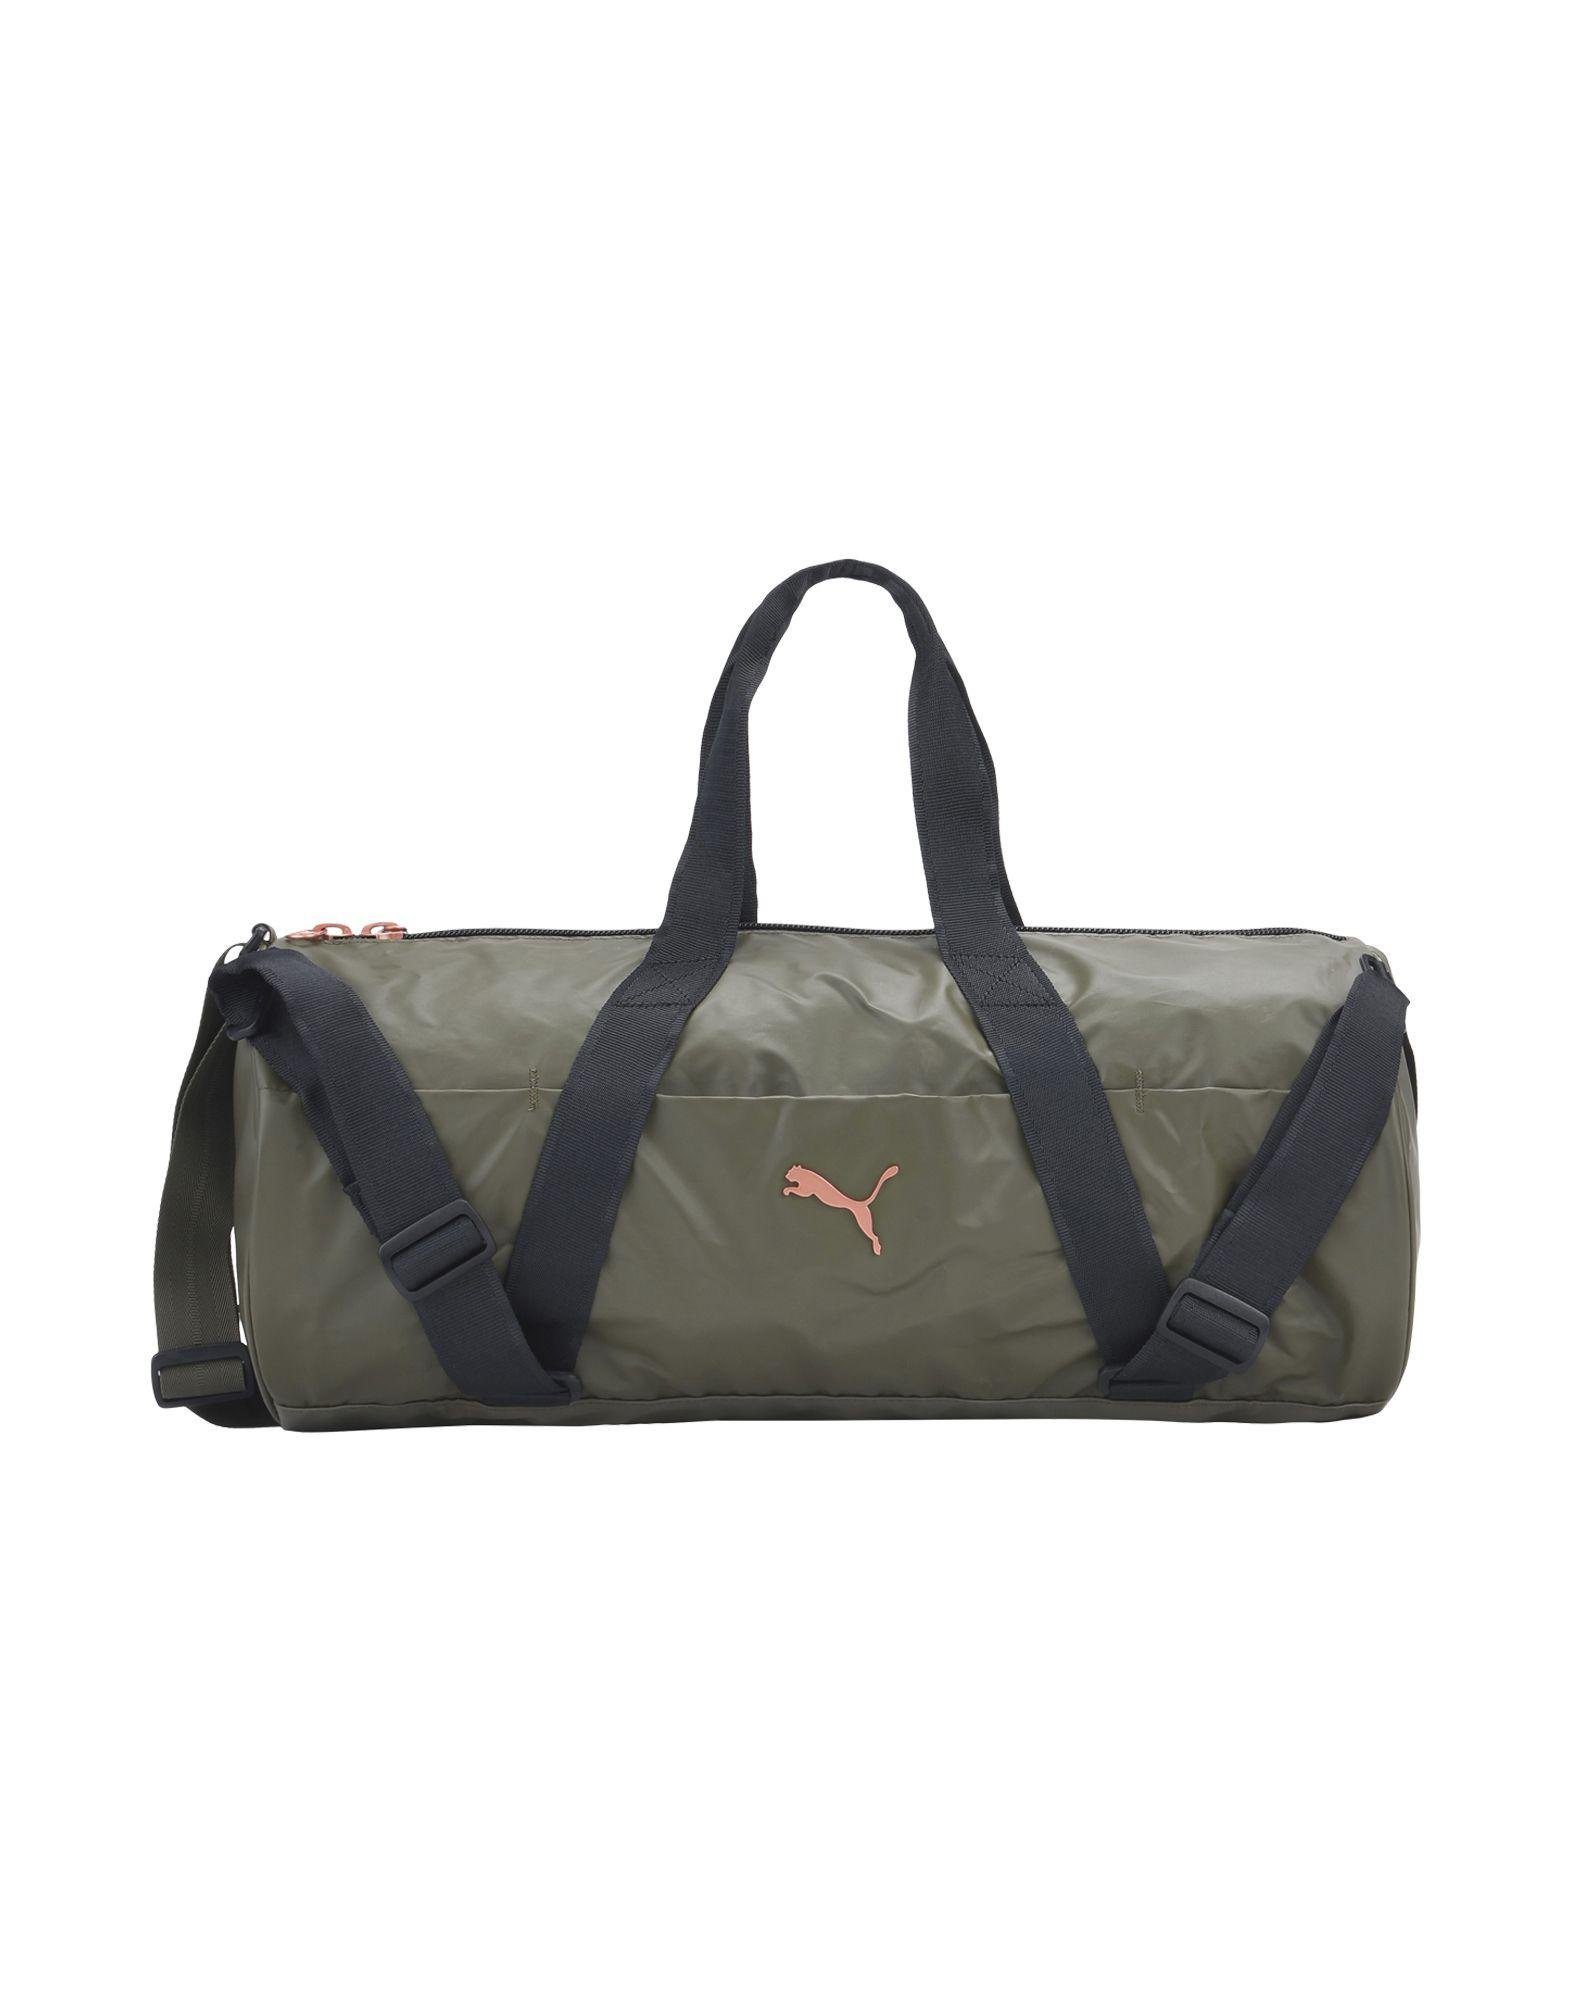 57a3e17c3a Lyst - PUMA Luggage in Green